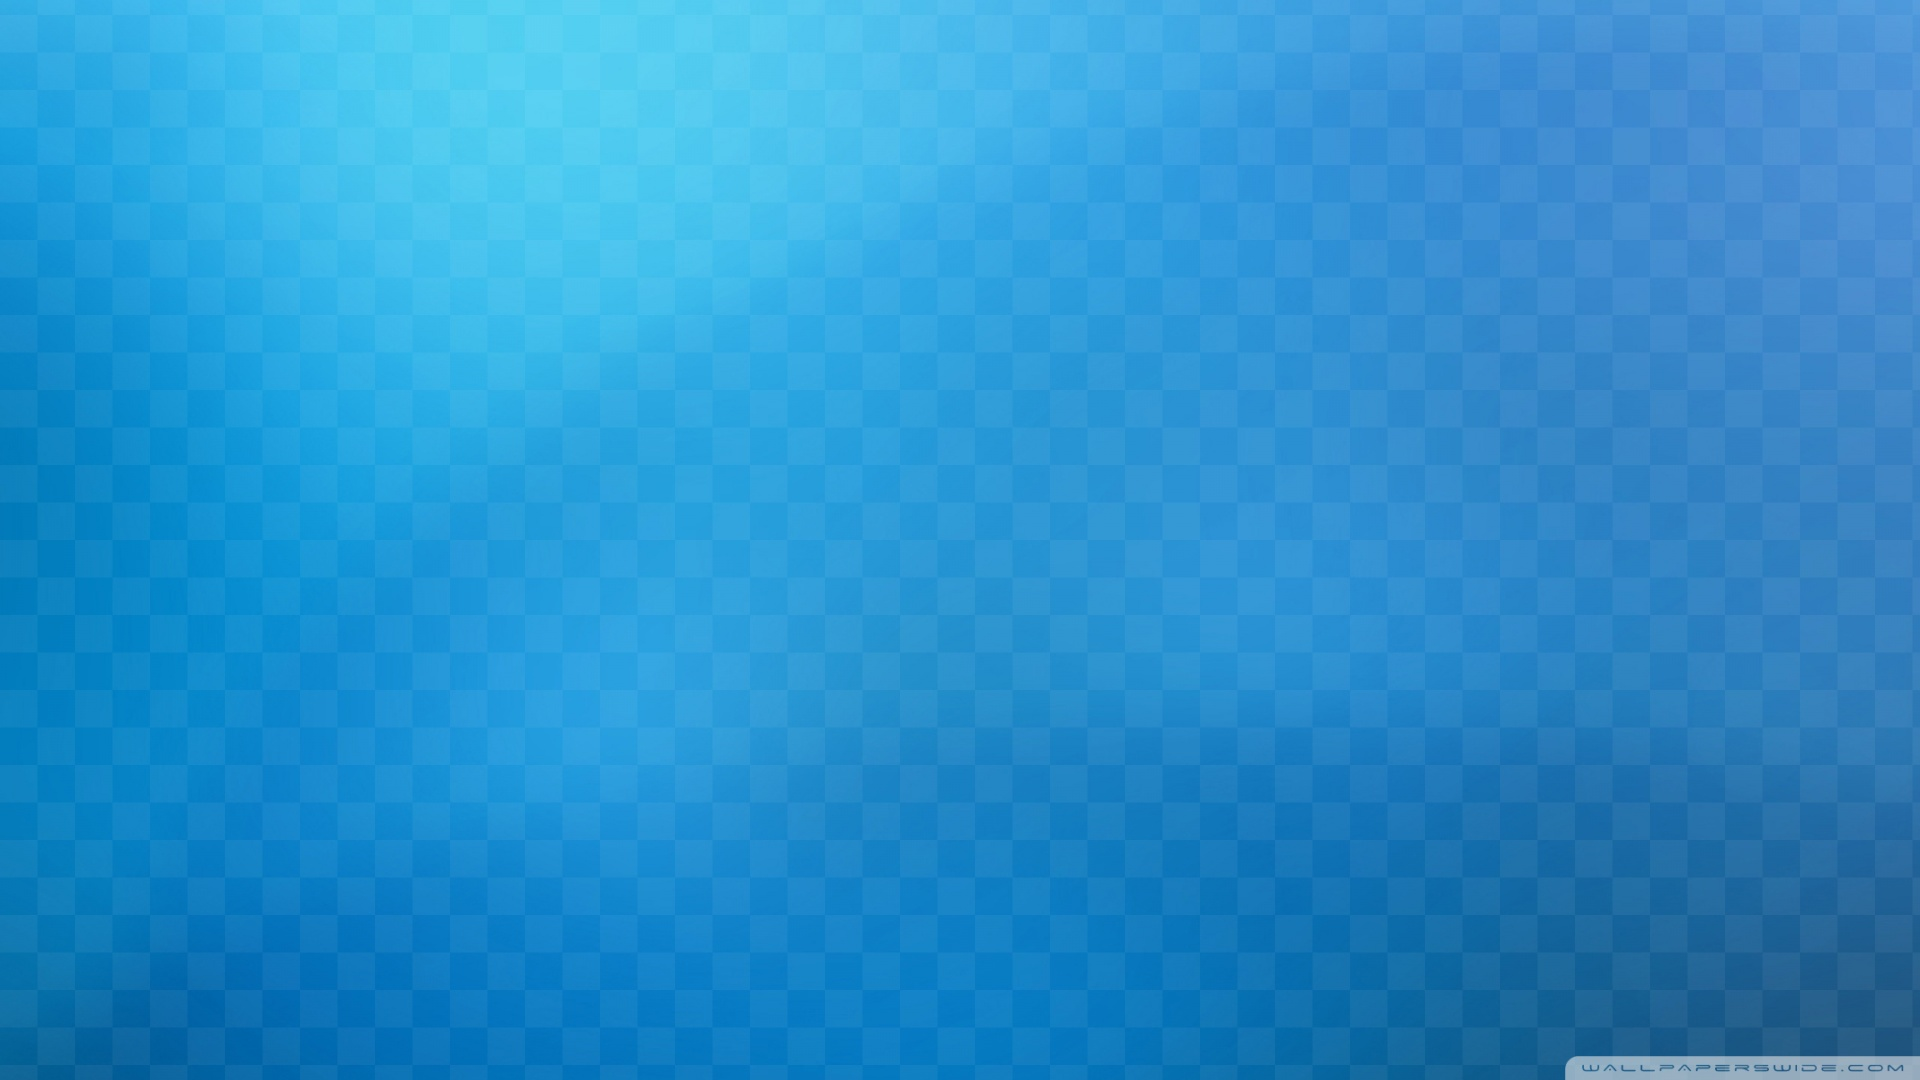 1920x1080 blue wallpaper: Blue Wallpaper 1920x1080